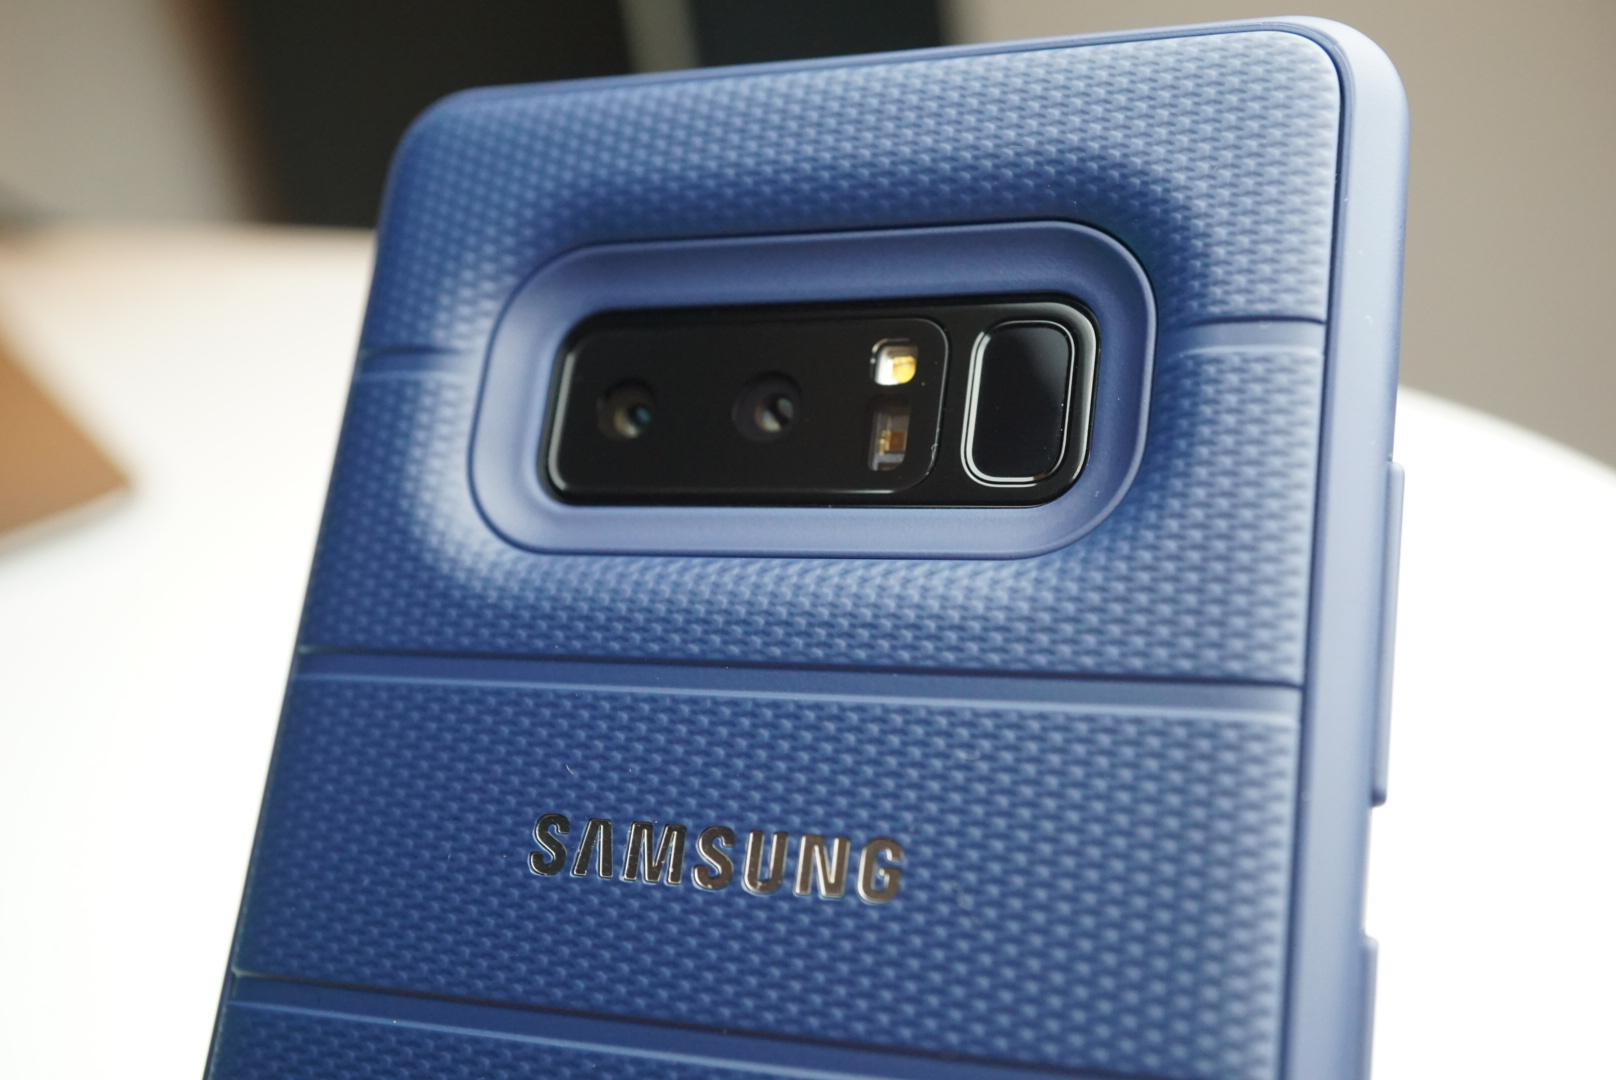 The Official Samsung Galaxy Note 8 Rugged Protective Cover